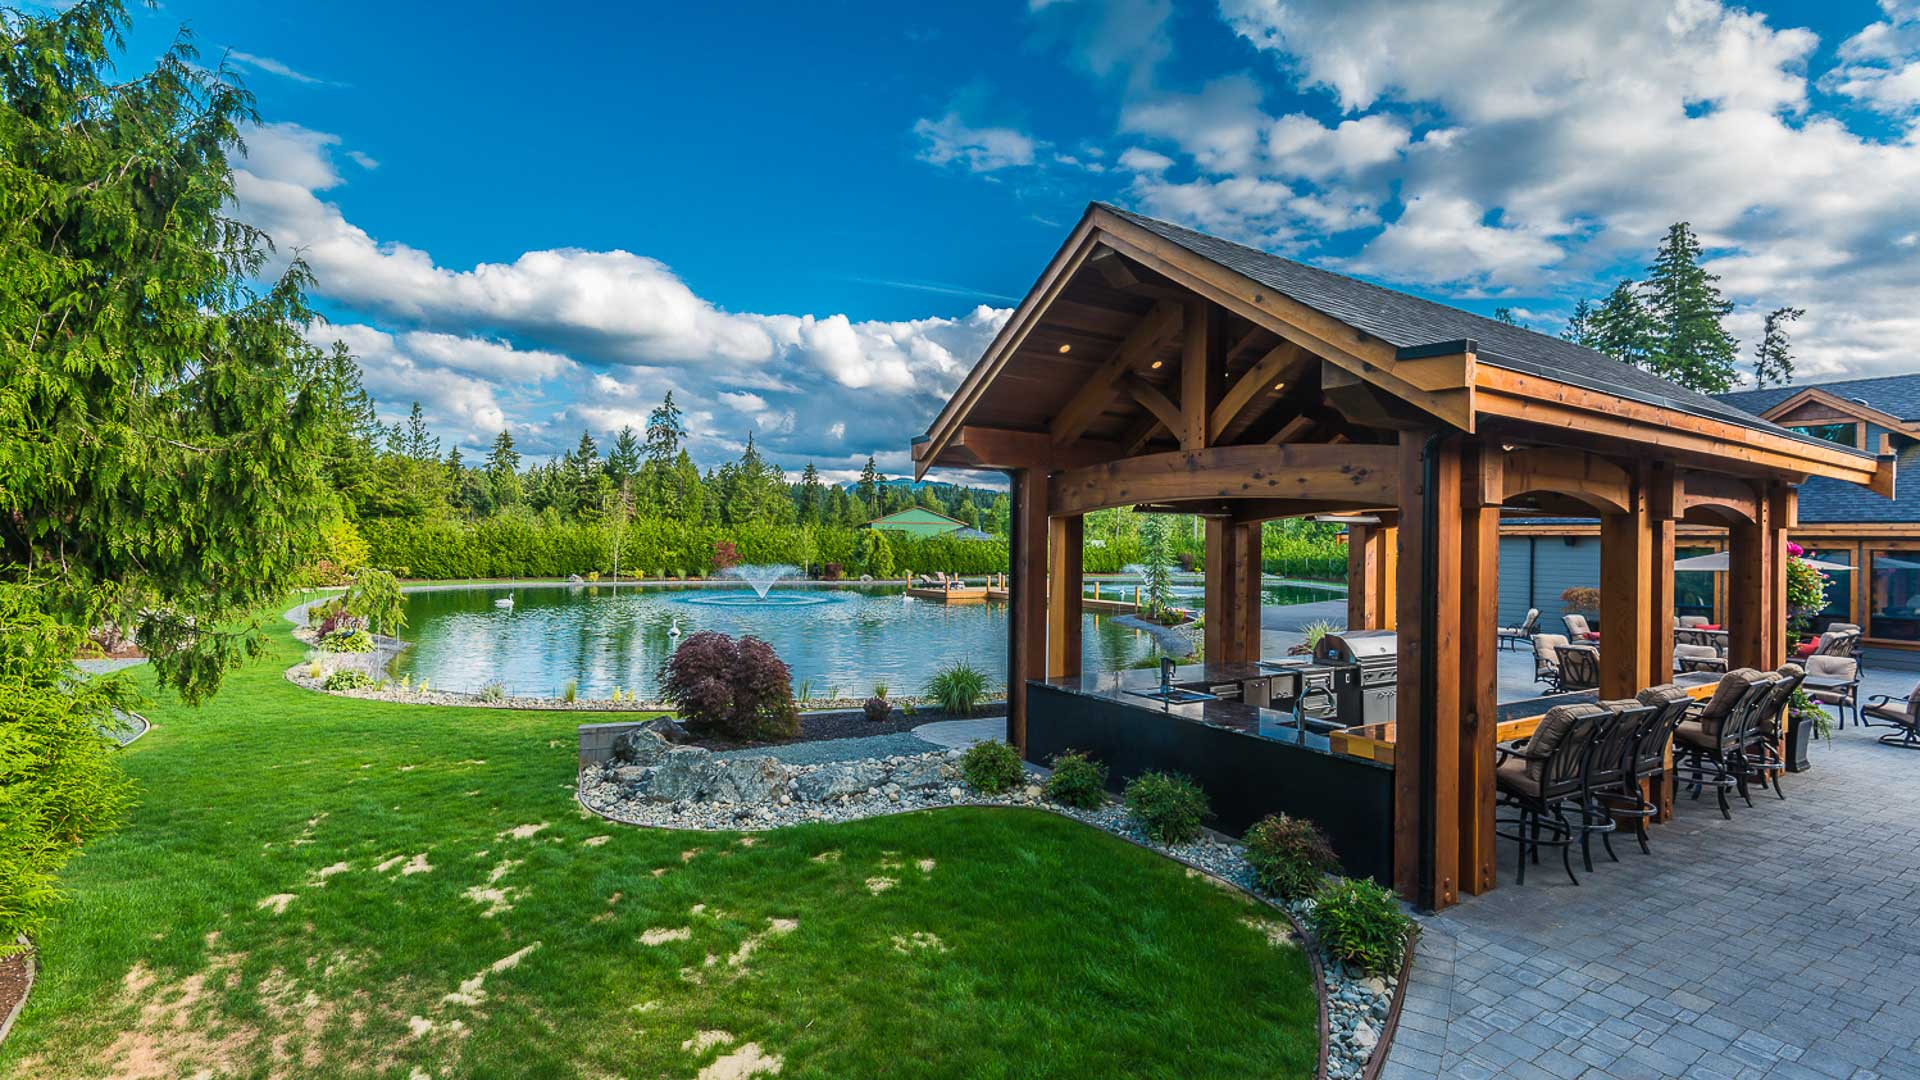 Here is the New Image Of Patio Homes for Sale Comox Valley